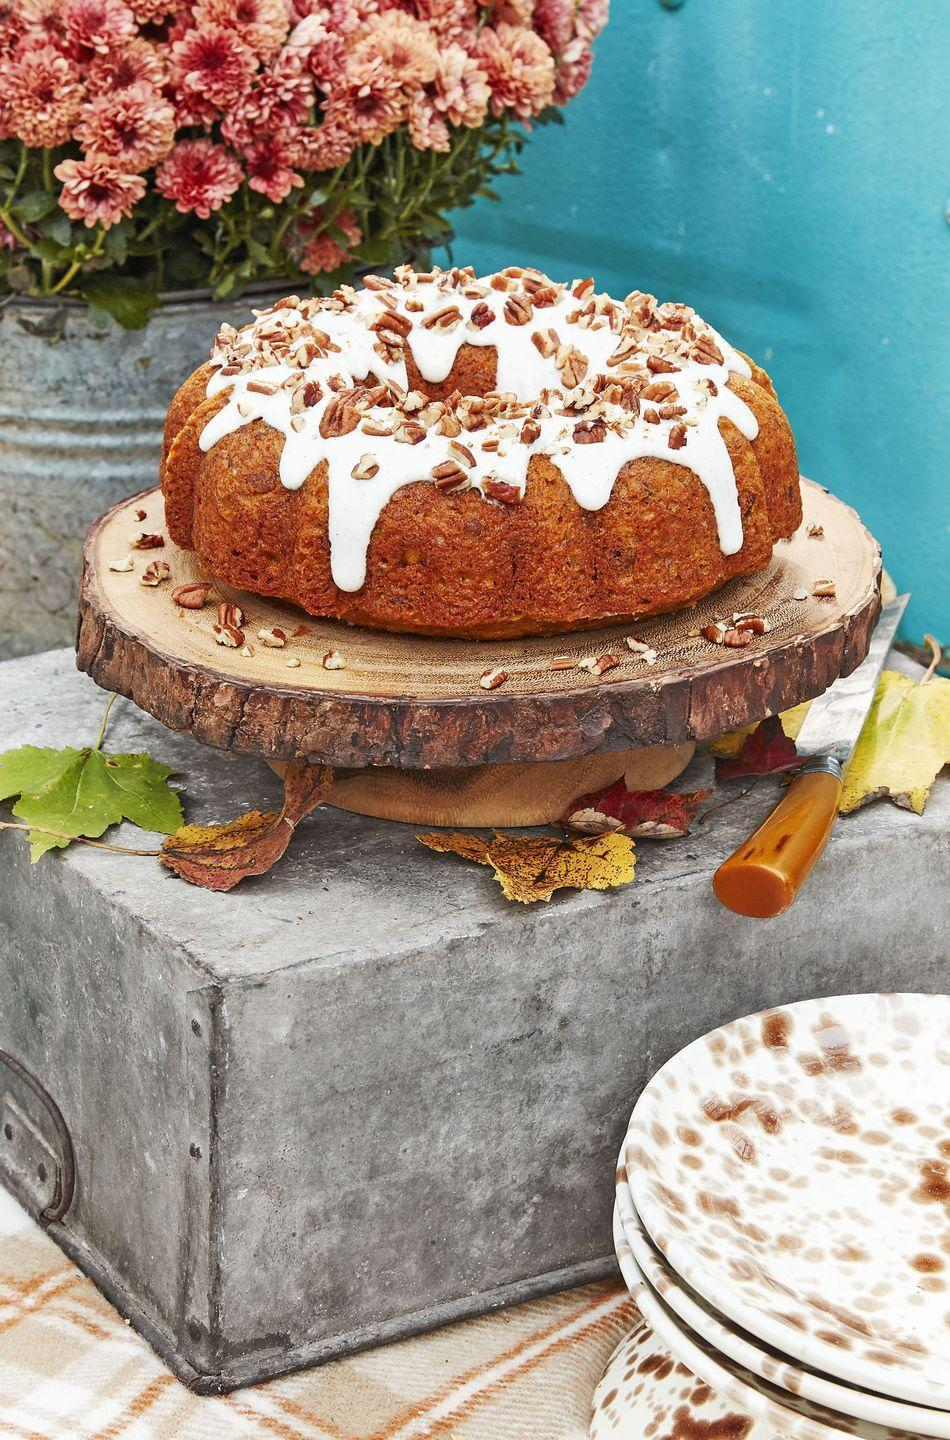 <p>For those who have opted for a smaller, more intimate ceremony, a delicious bundt cake may fit right in.</p>